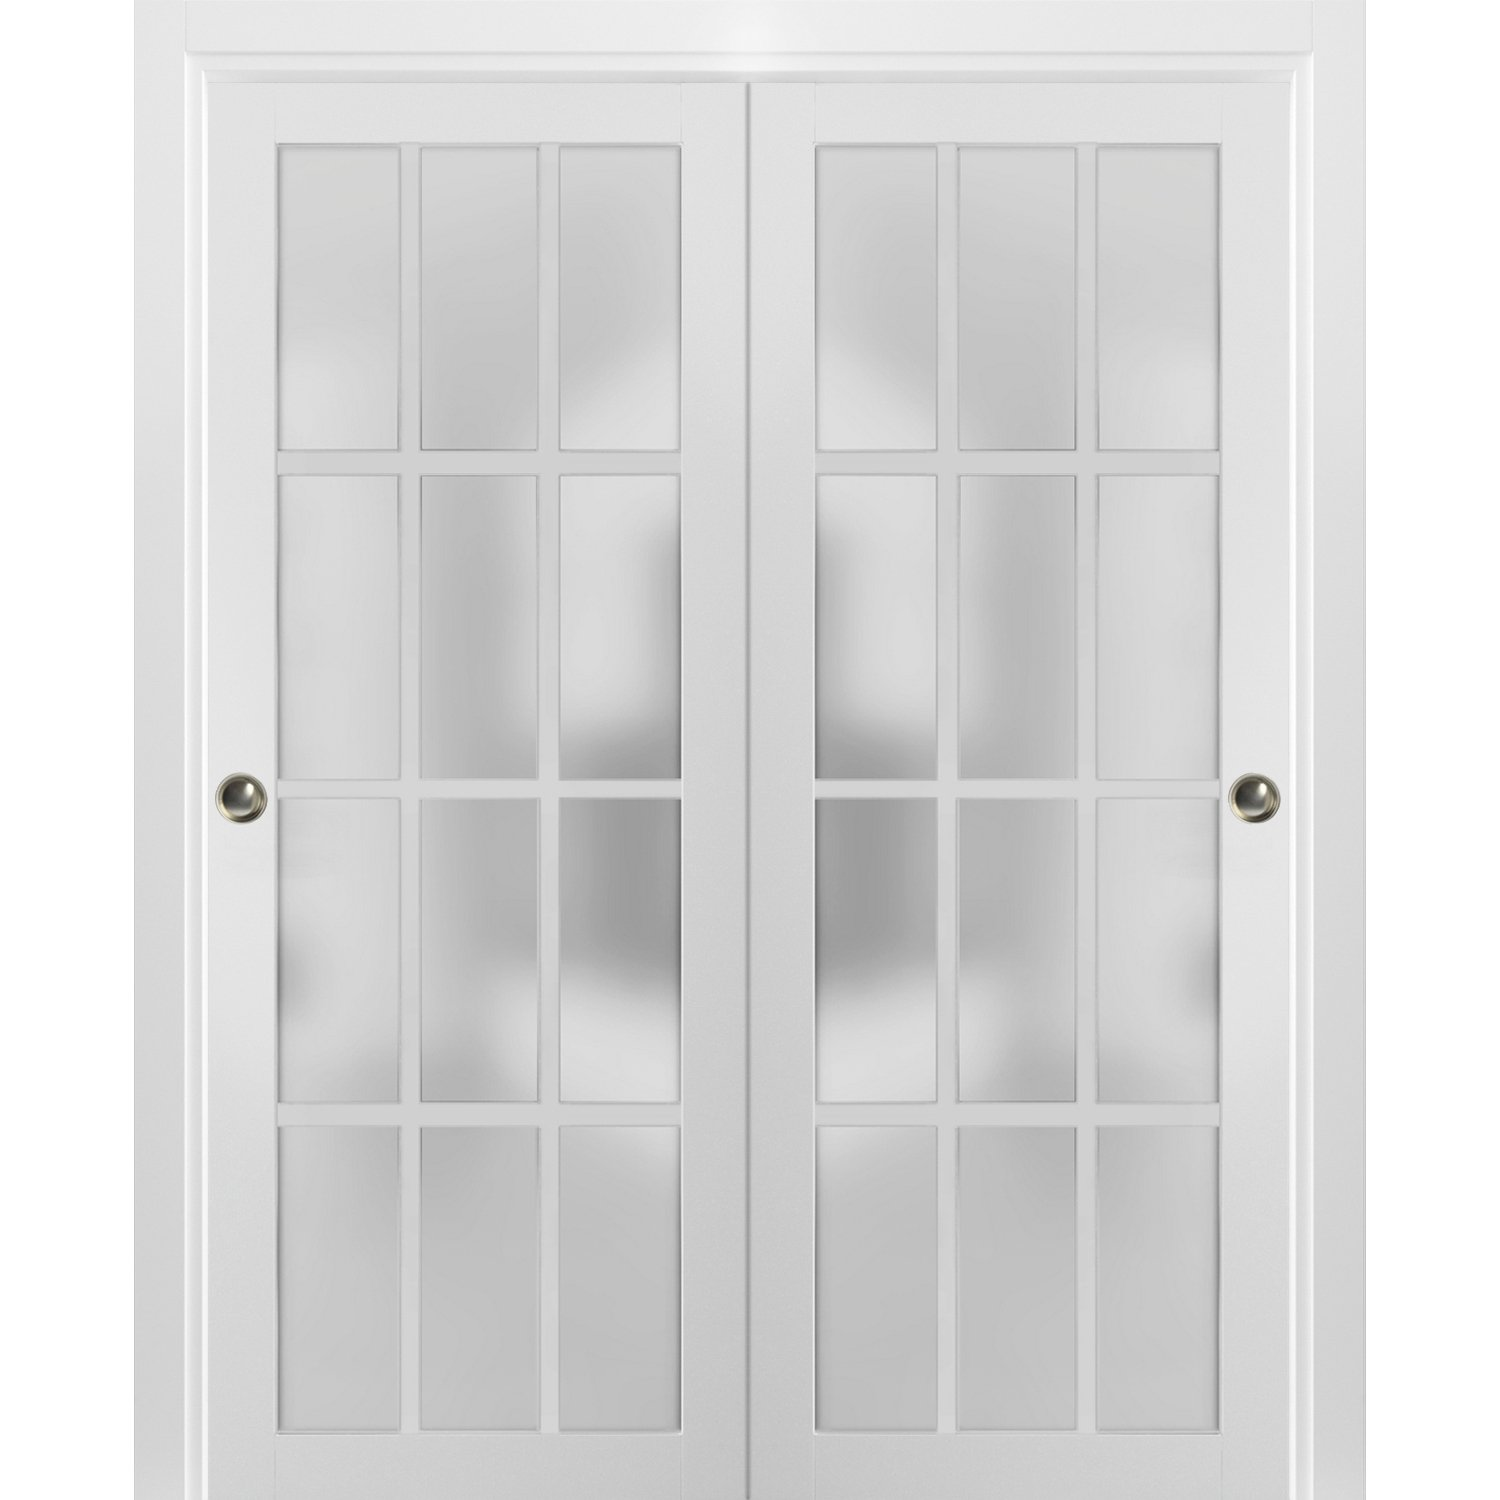 sliding closet frosted glass 12 lites bypass doors 60 x 80 inches felicia 3312 matte white sturdy top mount rails moldings trims hardware set